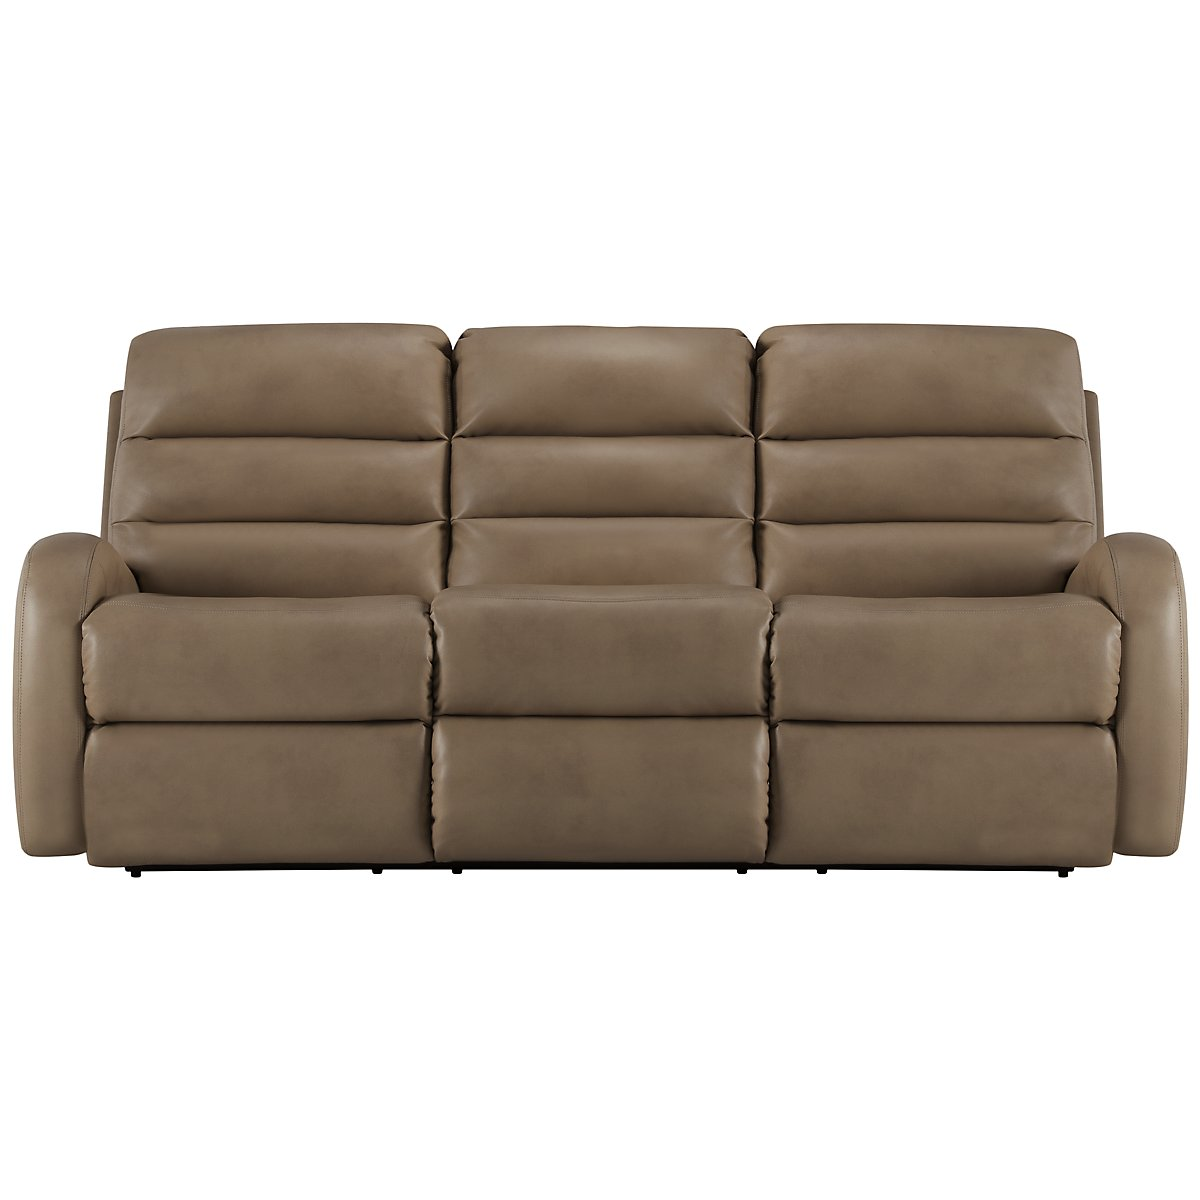 Carver Beige Microfiber Power Reclining Sofa